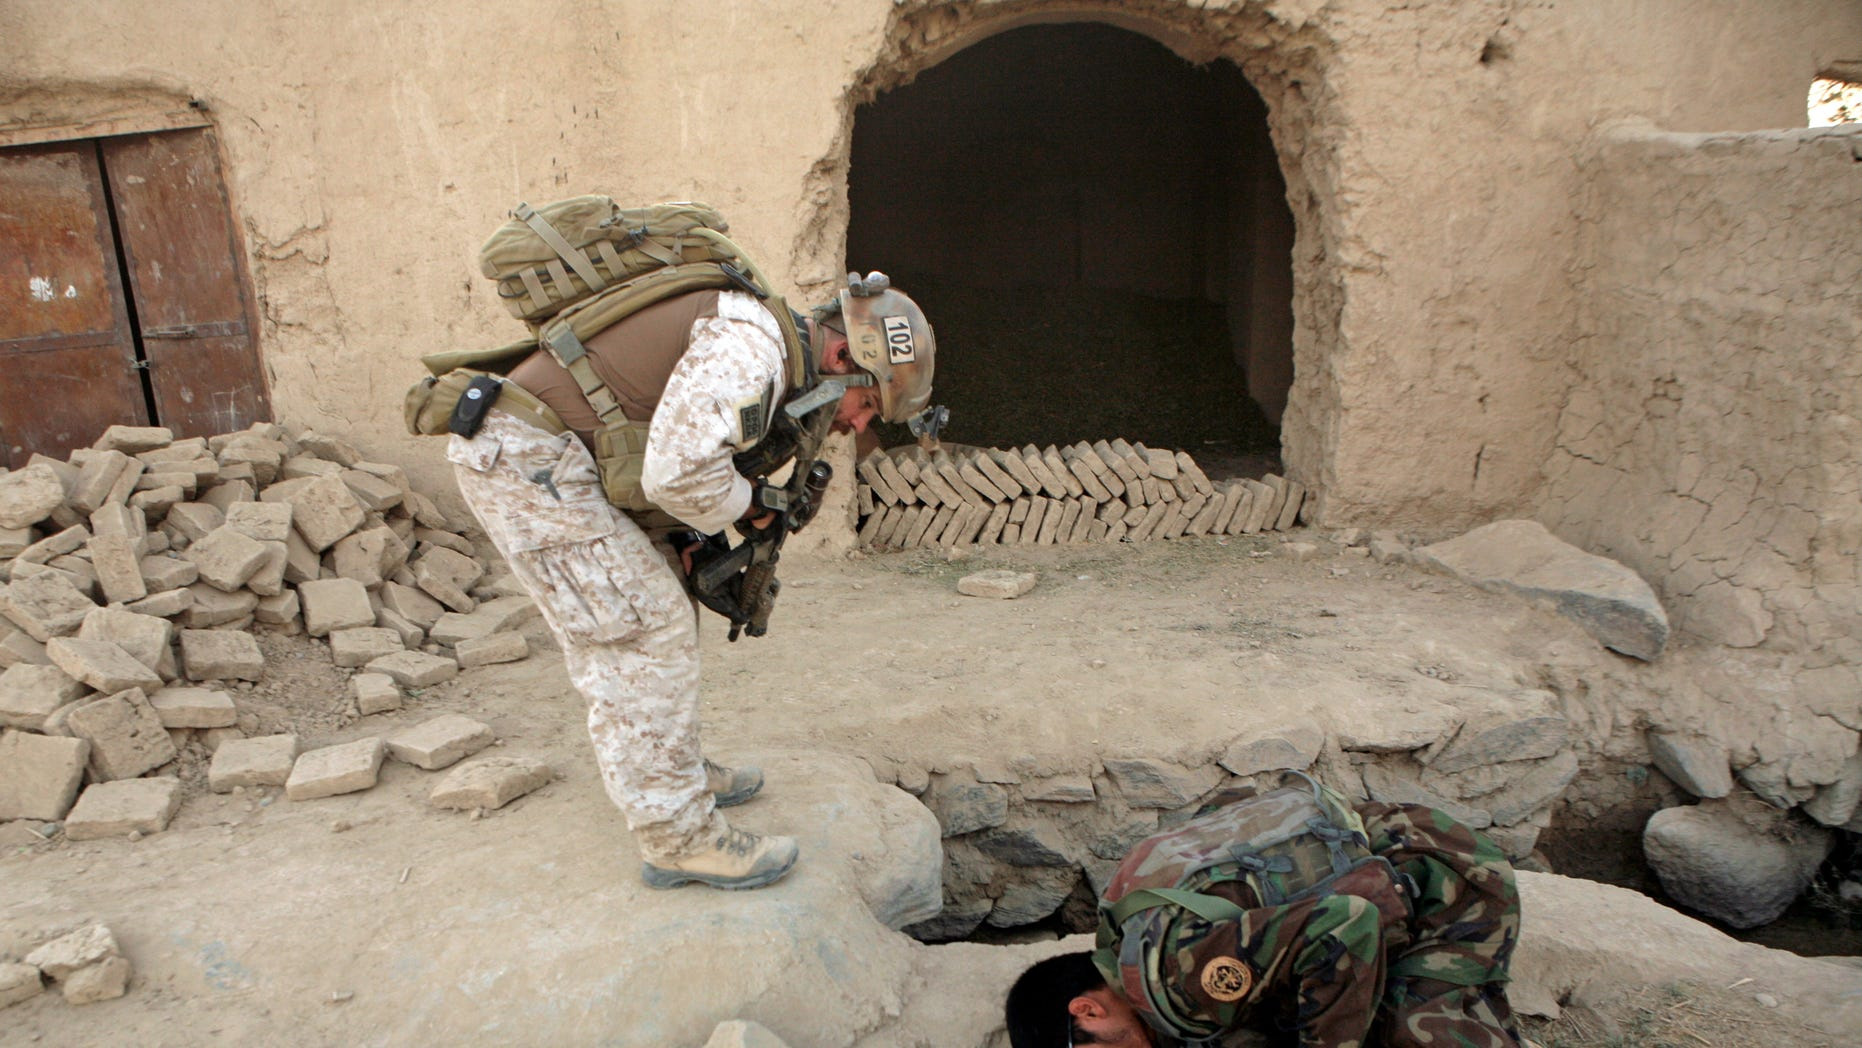 FILE - In this Saturday, Oct. 31, 2009 file photo, a member of U.S. special operations forces and an Afghan National Army soldier search for roadside bombs during a joint patrol in Shewan, a former Taliban stronghold in Afghanistan's Farah province.